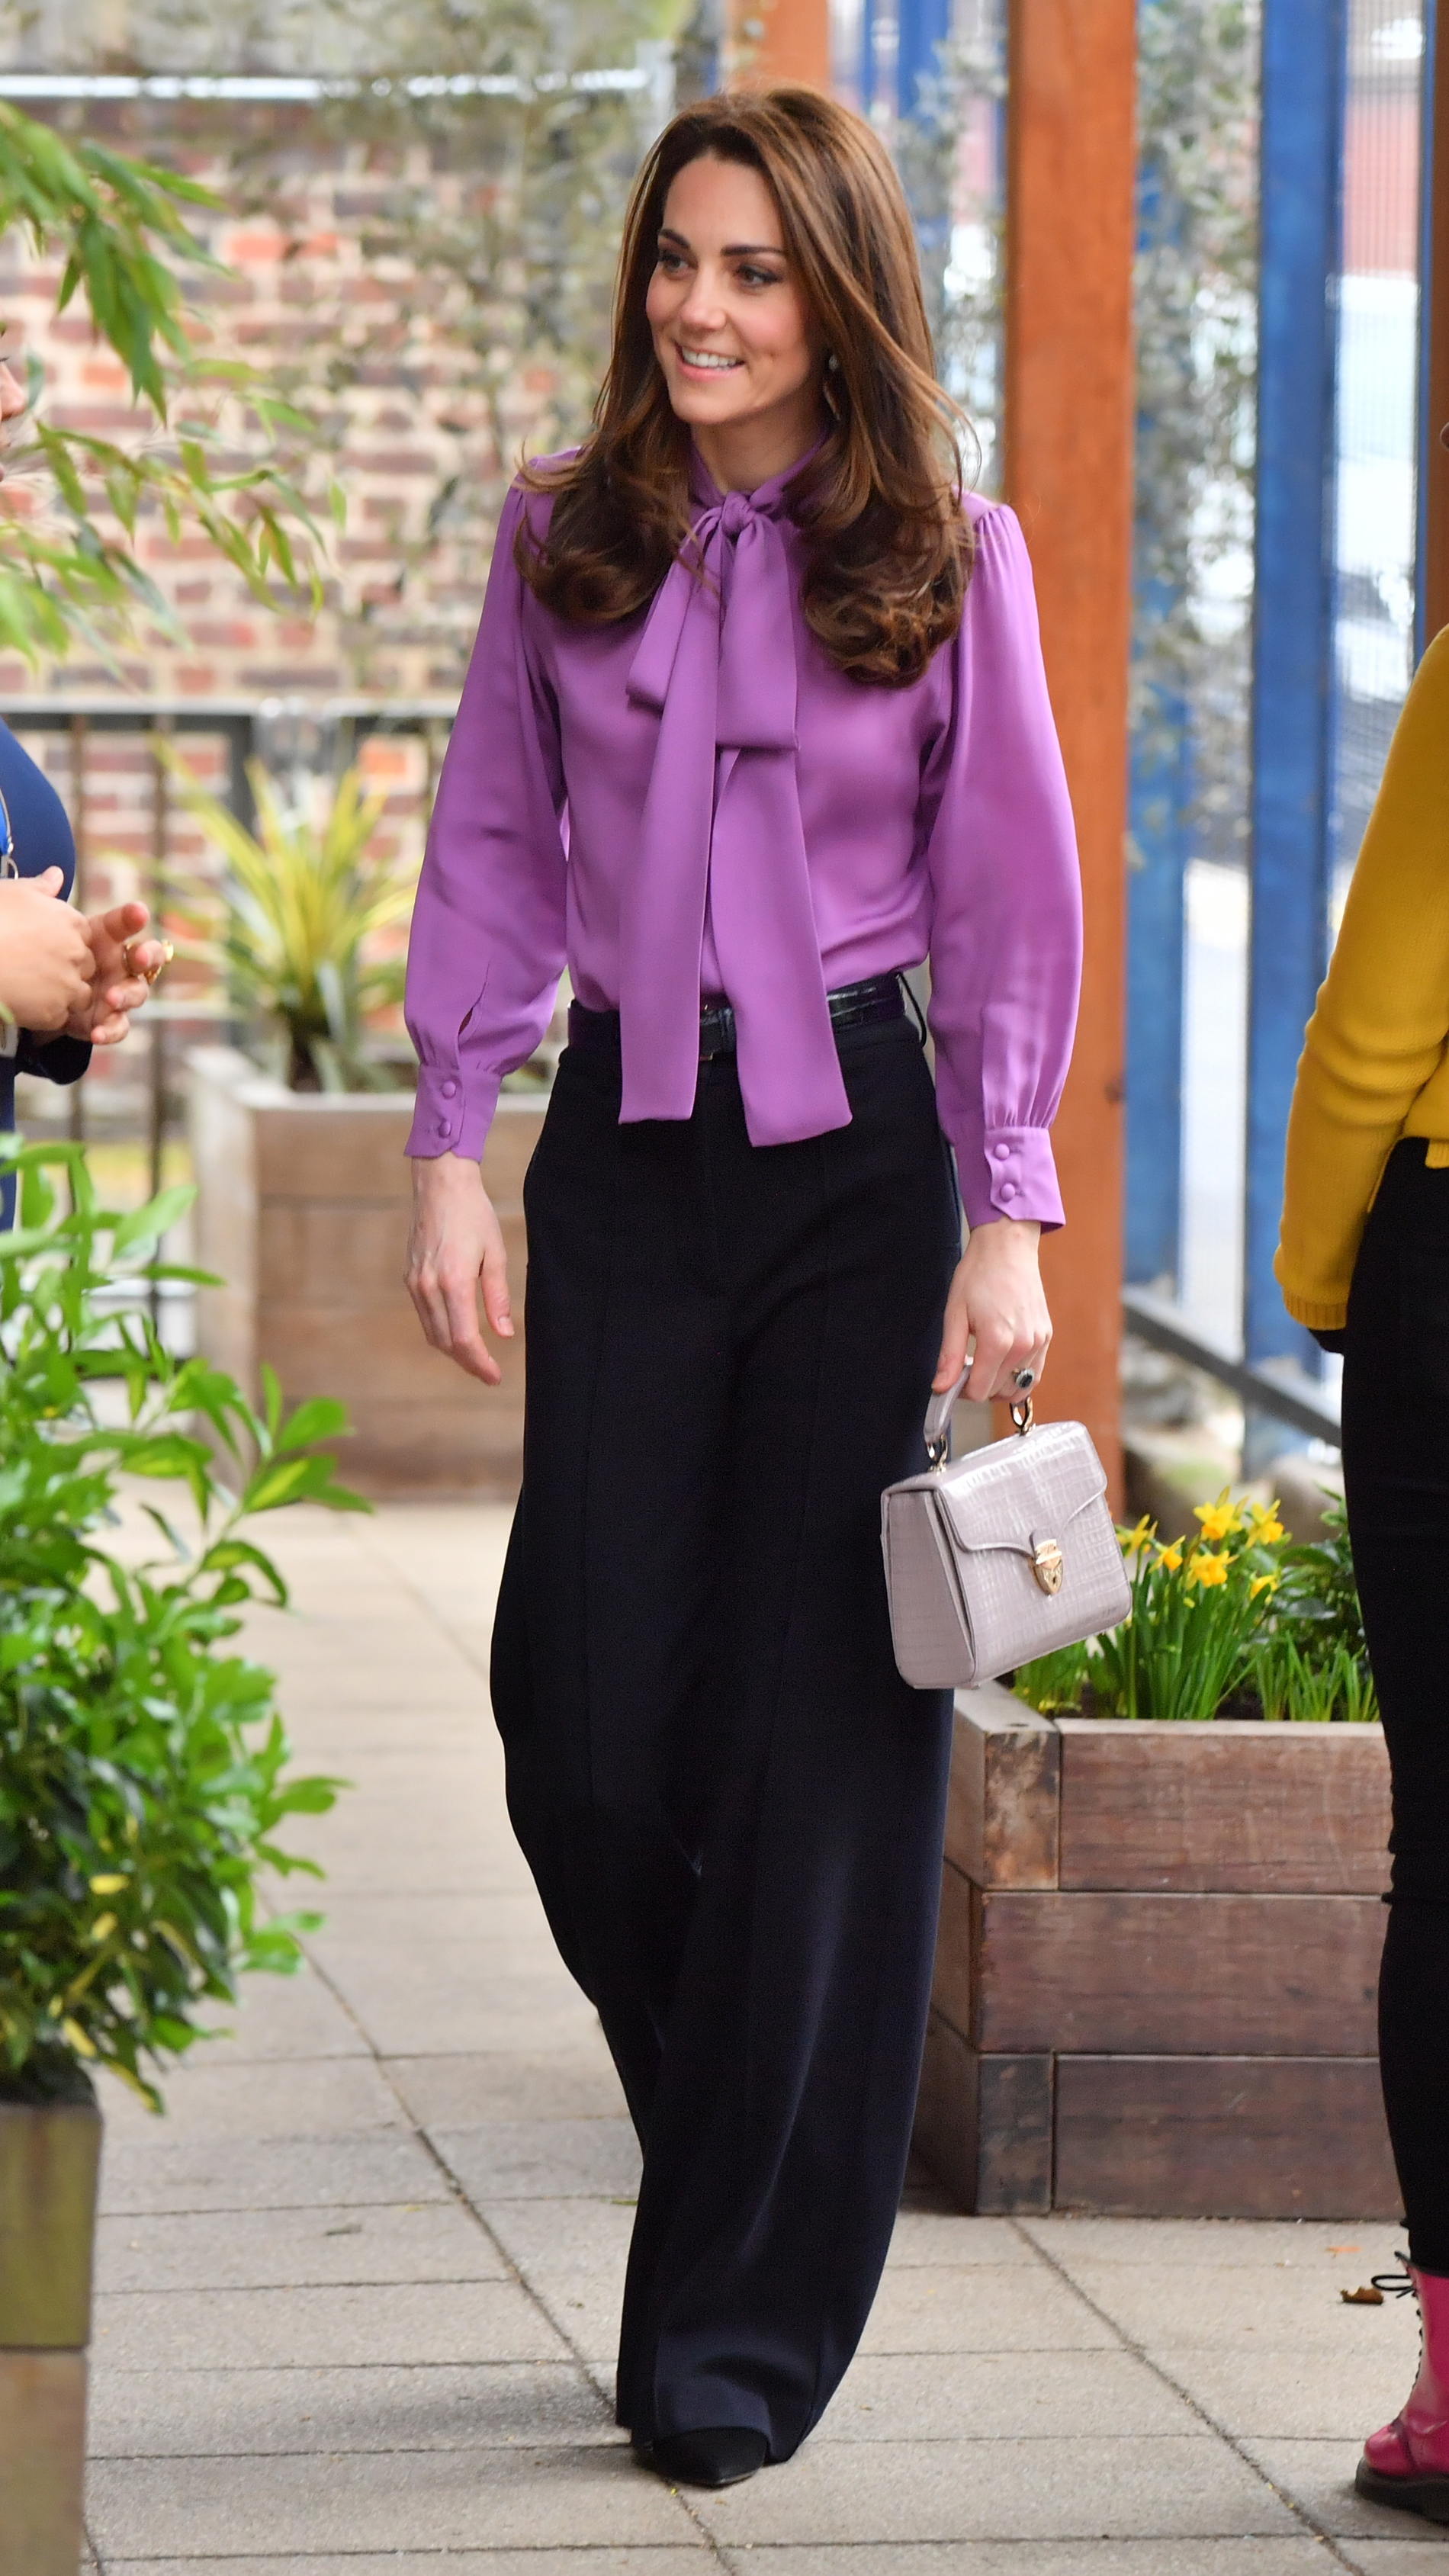 The Duchess of Cambridge during a visit to the Henry Fawcett Children's Centre in Kennington, London